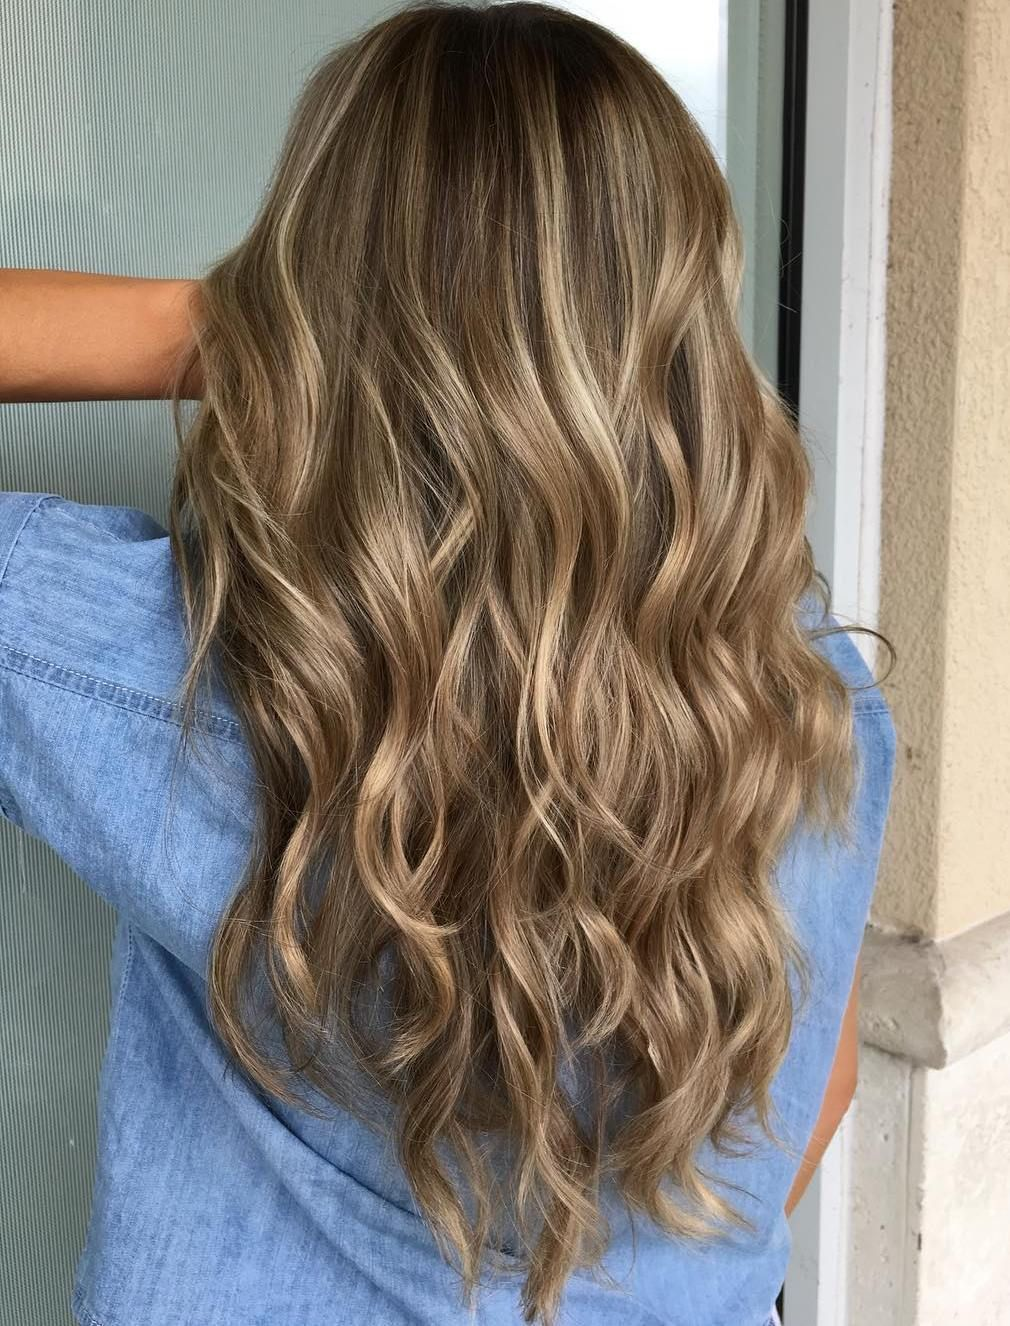 50 Blonde Hair Color Ideas For The Current Season Blonde Hair